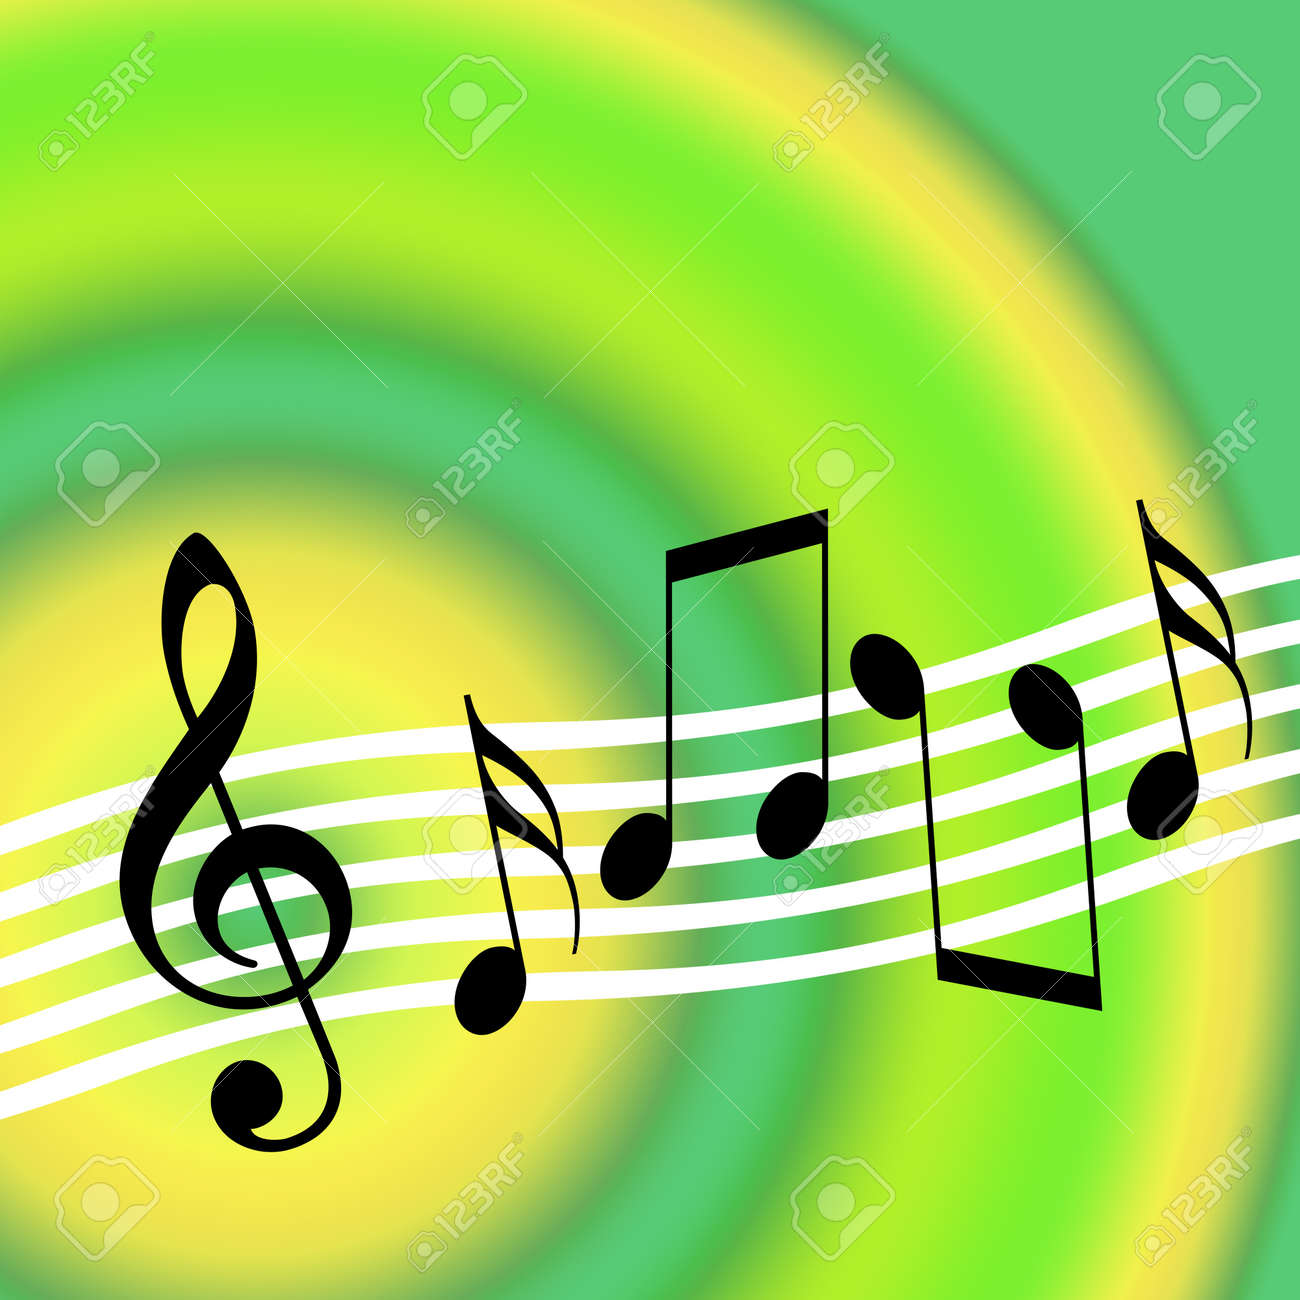 Music Symbols Stock Photos Royalty Free Music Symbols Images